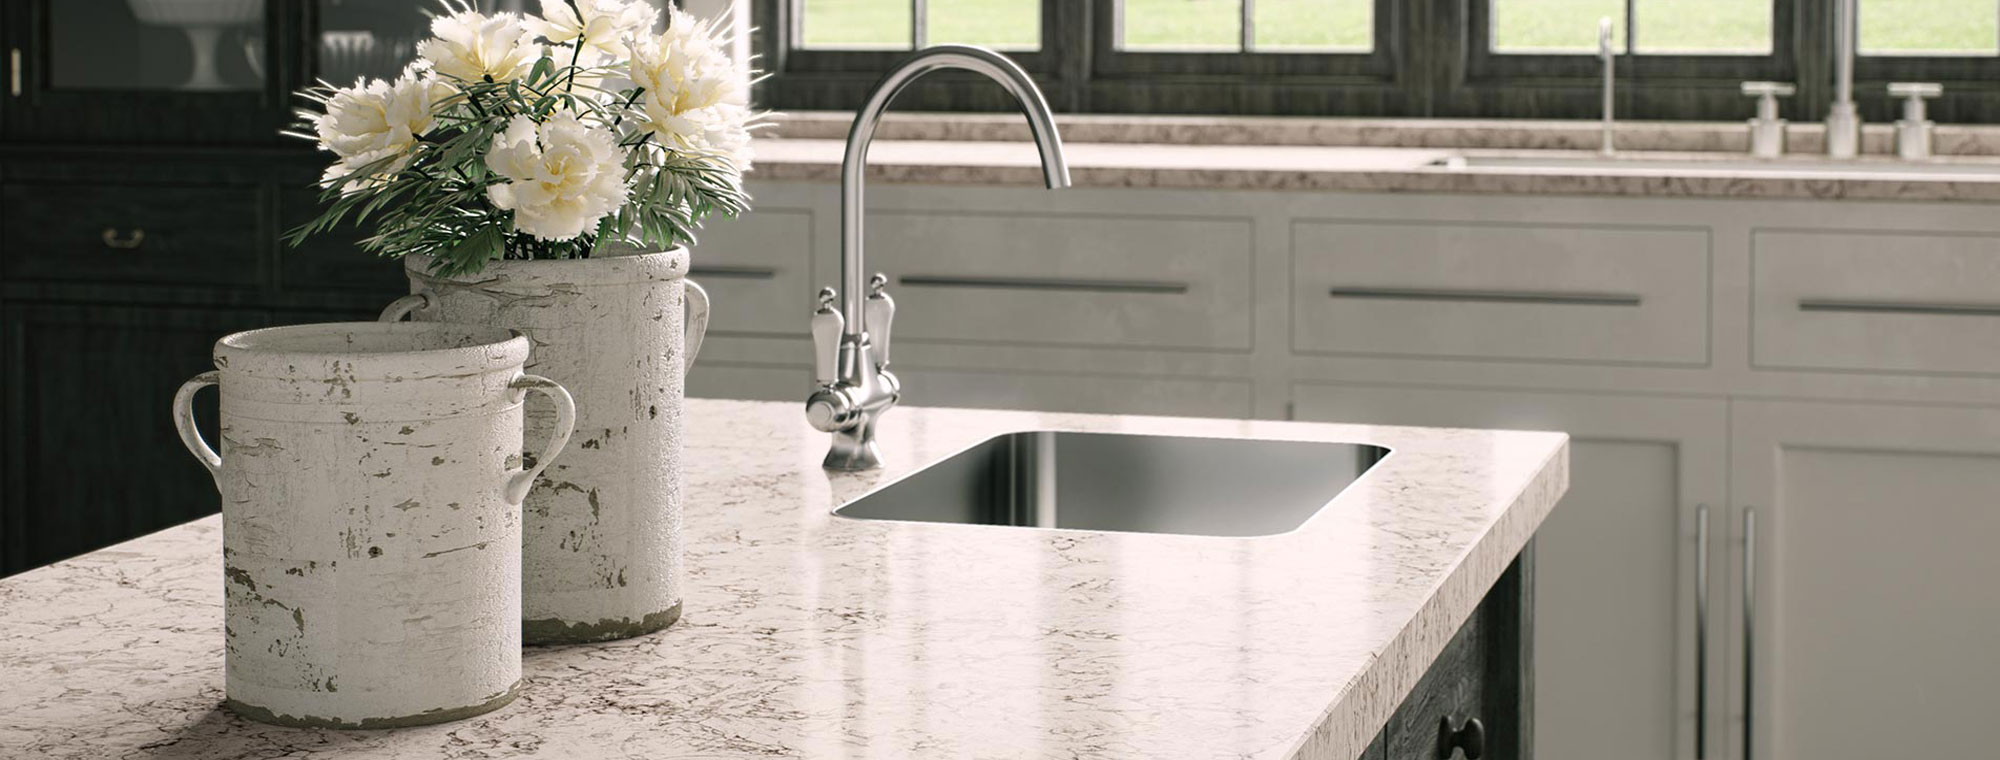 Caesarstone Countertops from Swartz Kitchens and Baths